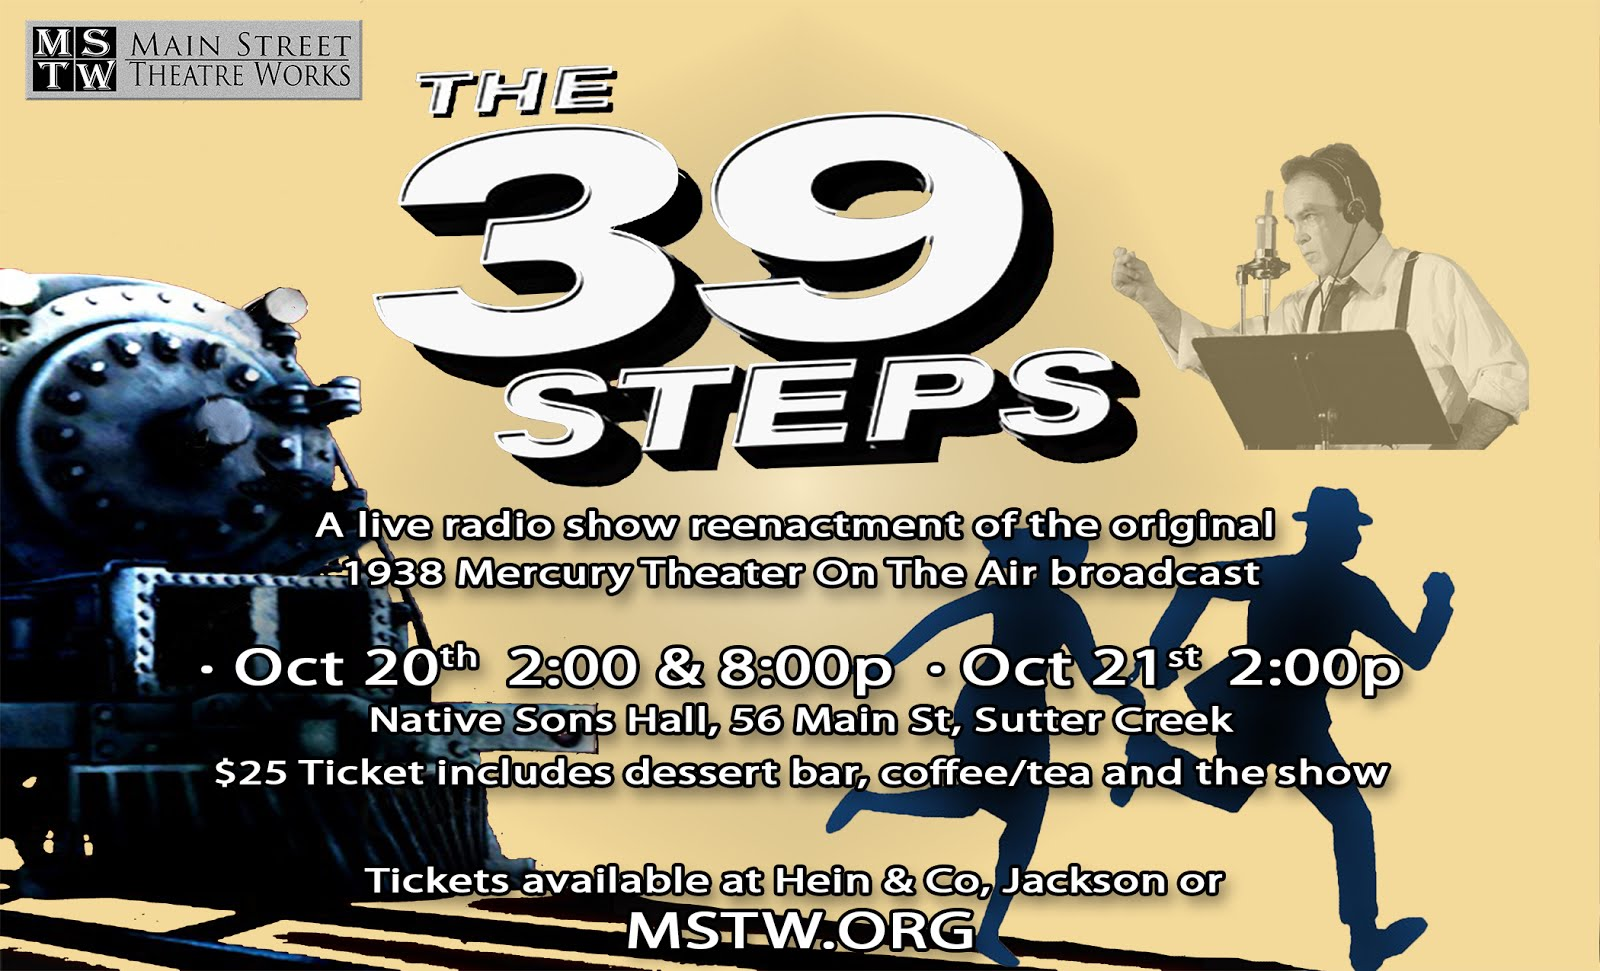 MSTW: The 39 Steps - Oct 20-21